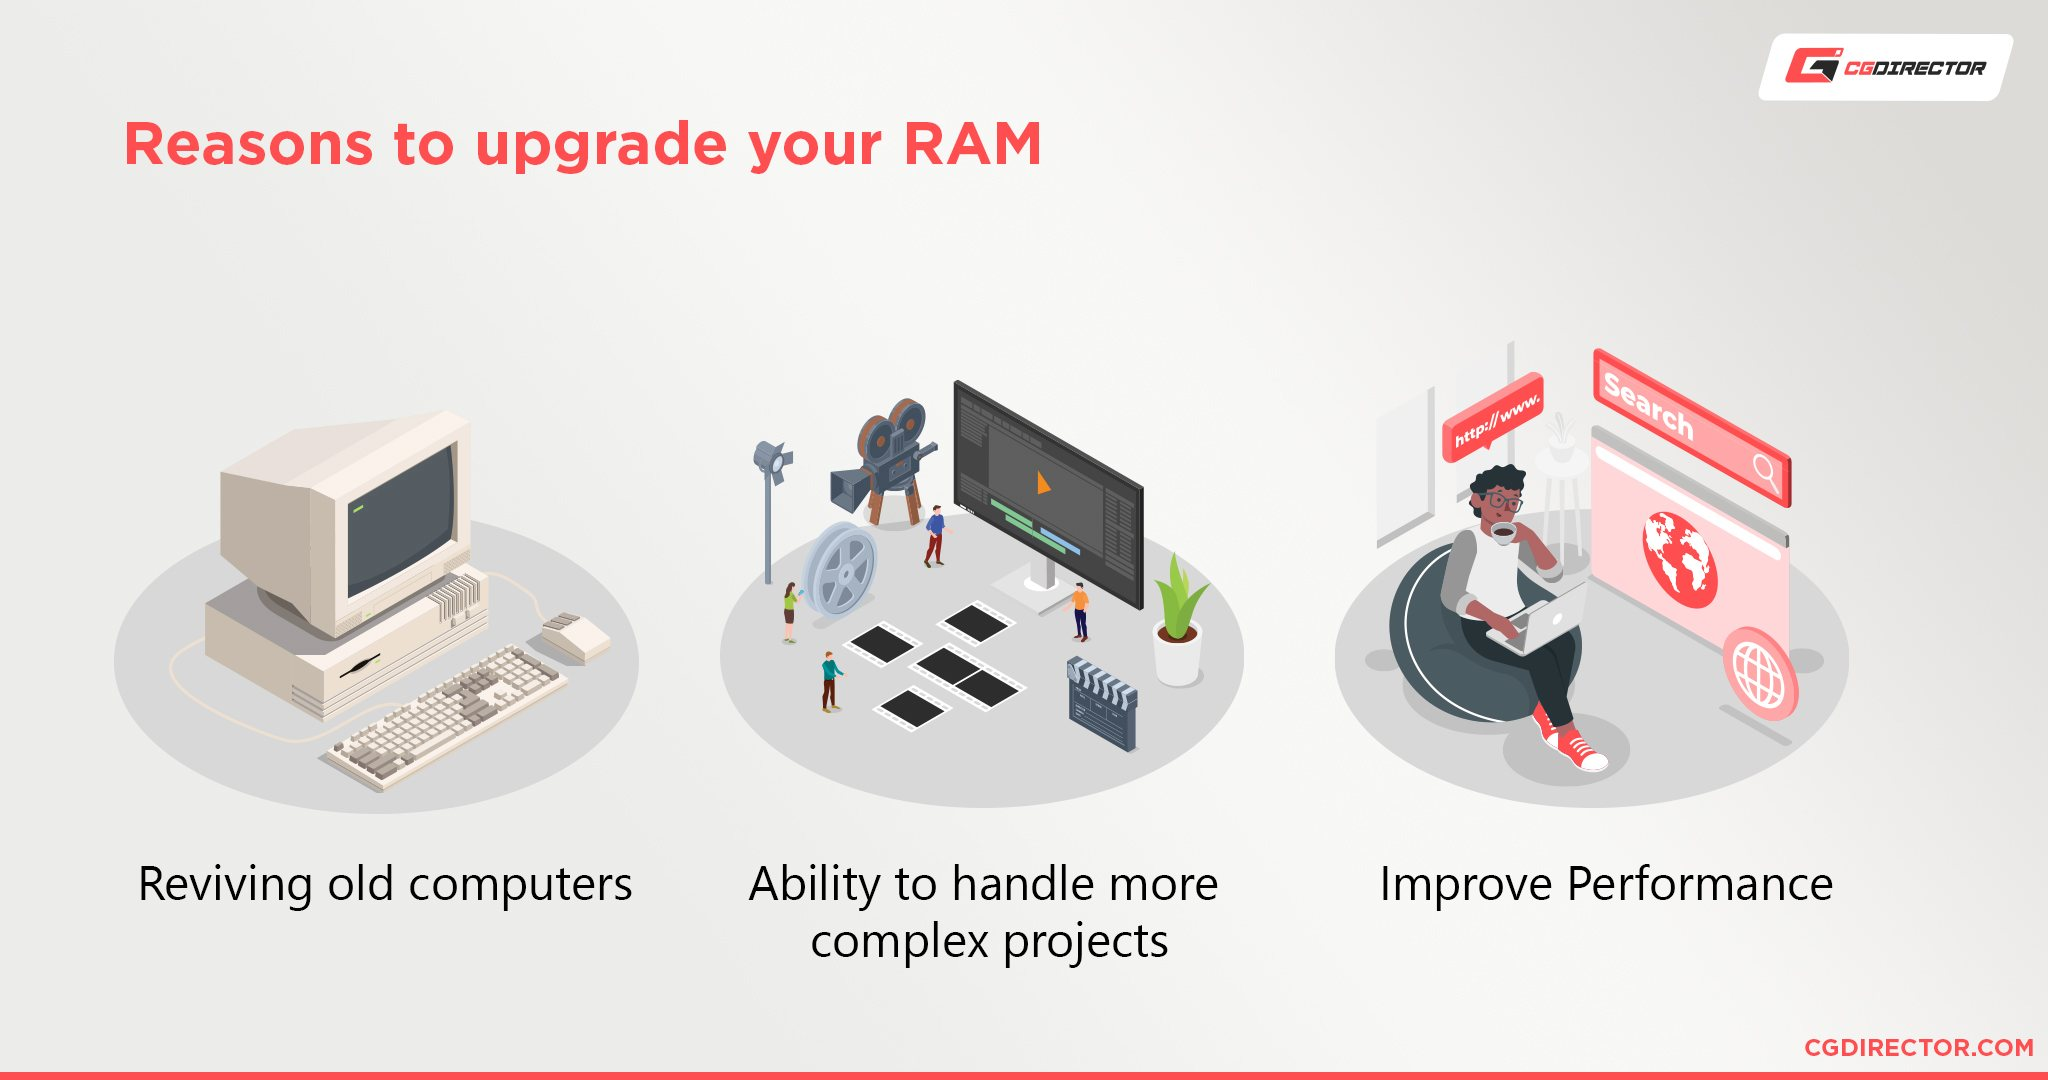 Reasons to upgrade your RAM